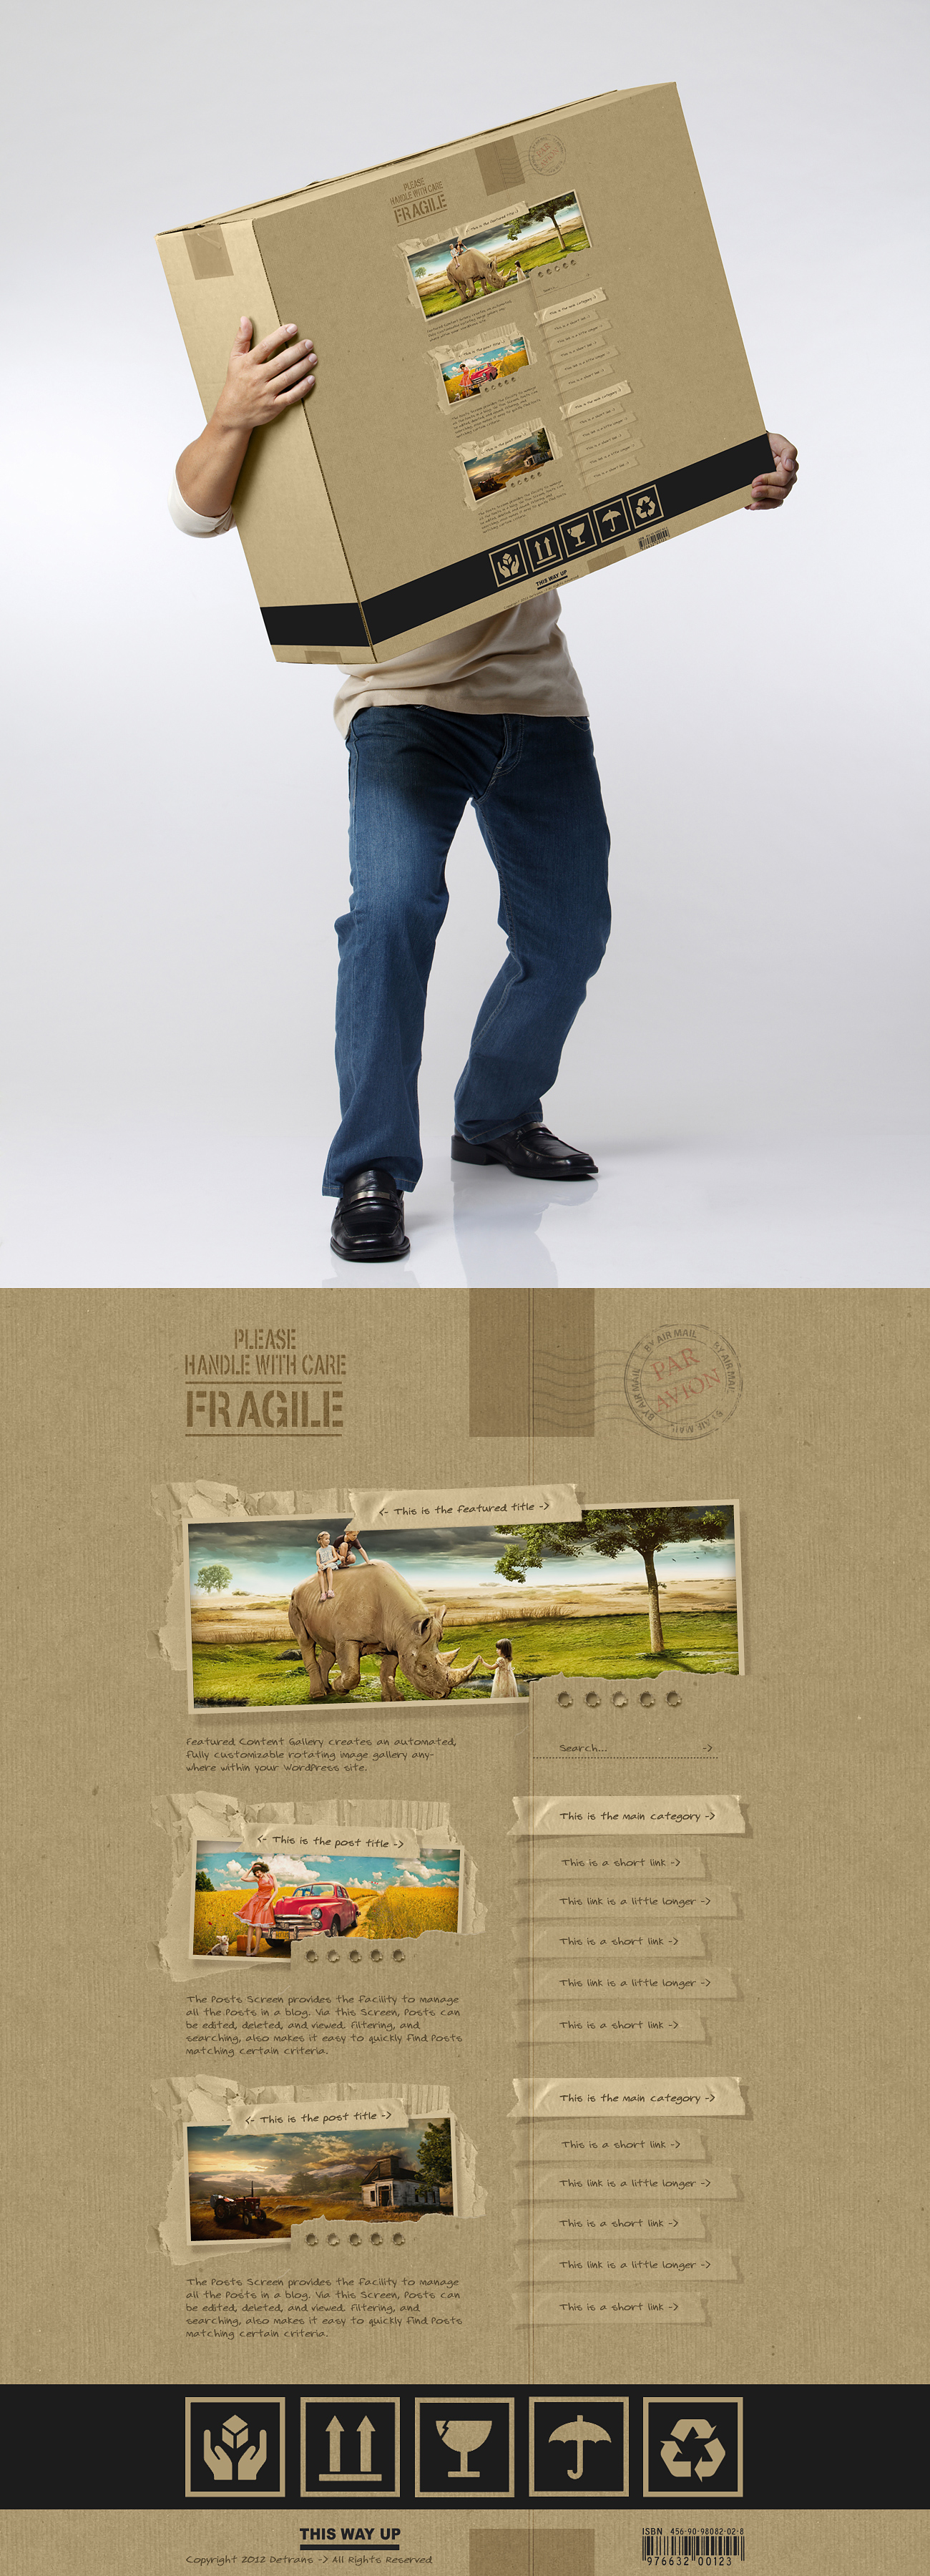 Fragile - WordPress Theme by detrans